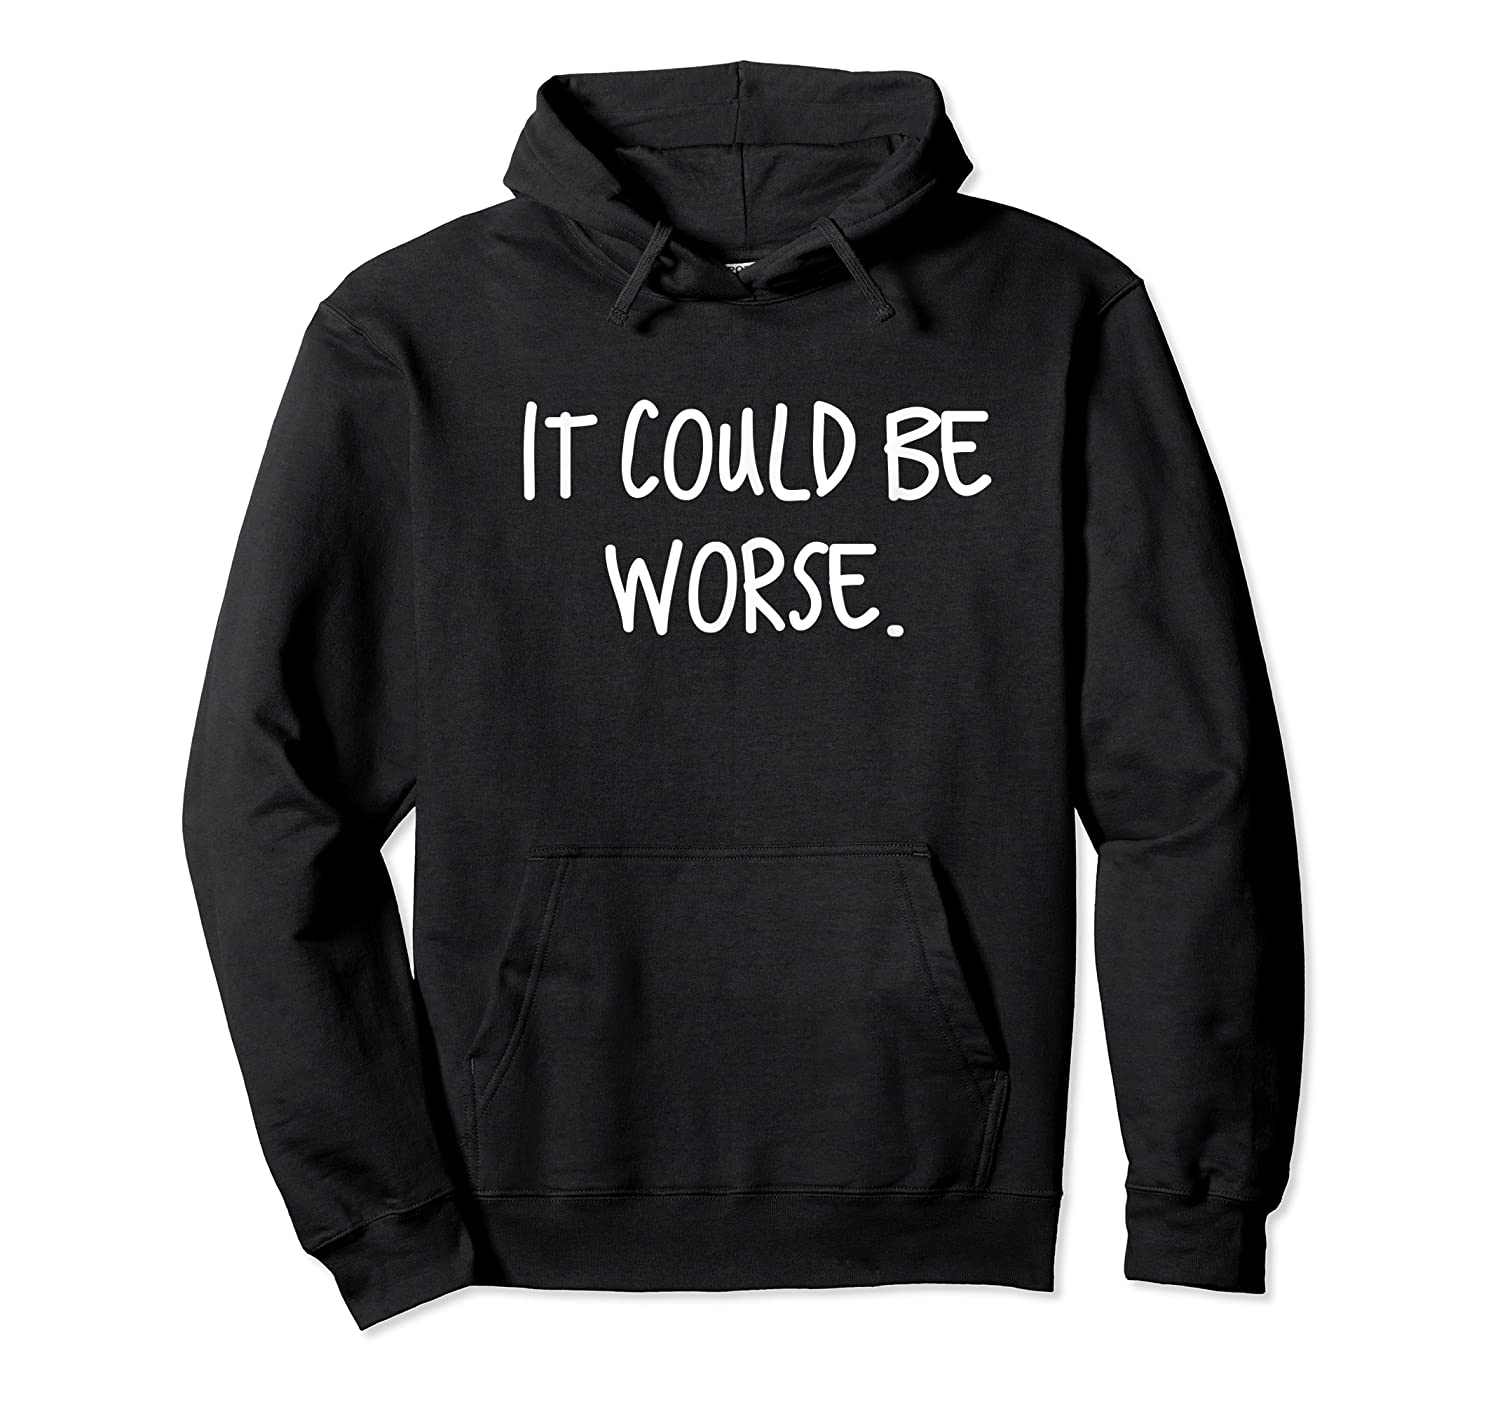 It Could Be Worse Funny Encouraget T-shirt Unisex Pullover Hoodie